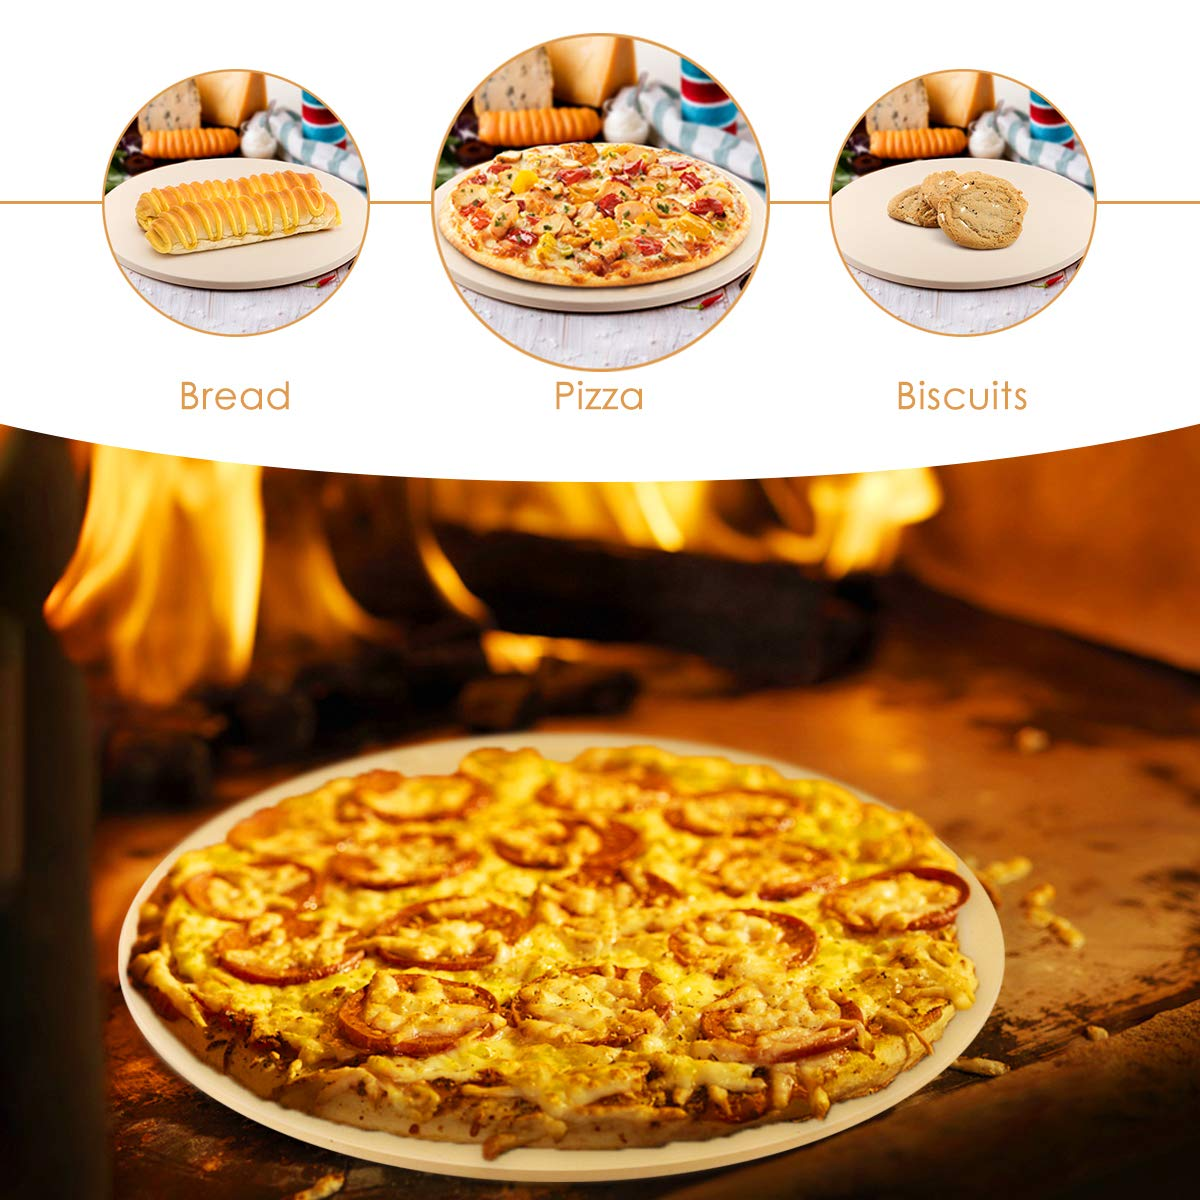 Pizza Stone, Cakie Heavy Duty Ceramic Pizza Grilling Stone, 16 Inch Round Baking Stone, Pizza Pan, Perfect for Oven, BBQ and Grill, Thermal Shock Resistant, Durable and Safe by Cakie (Image #6)